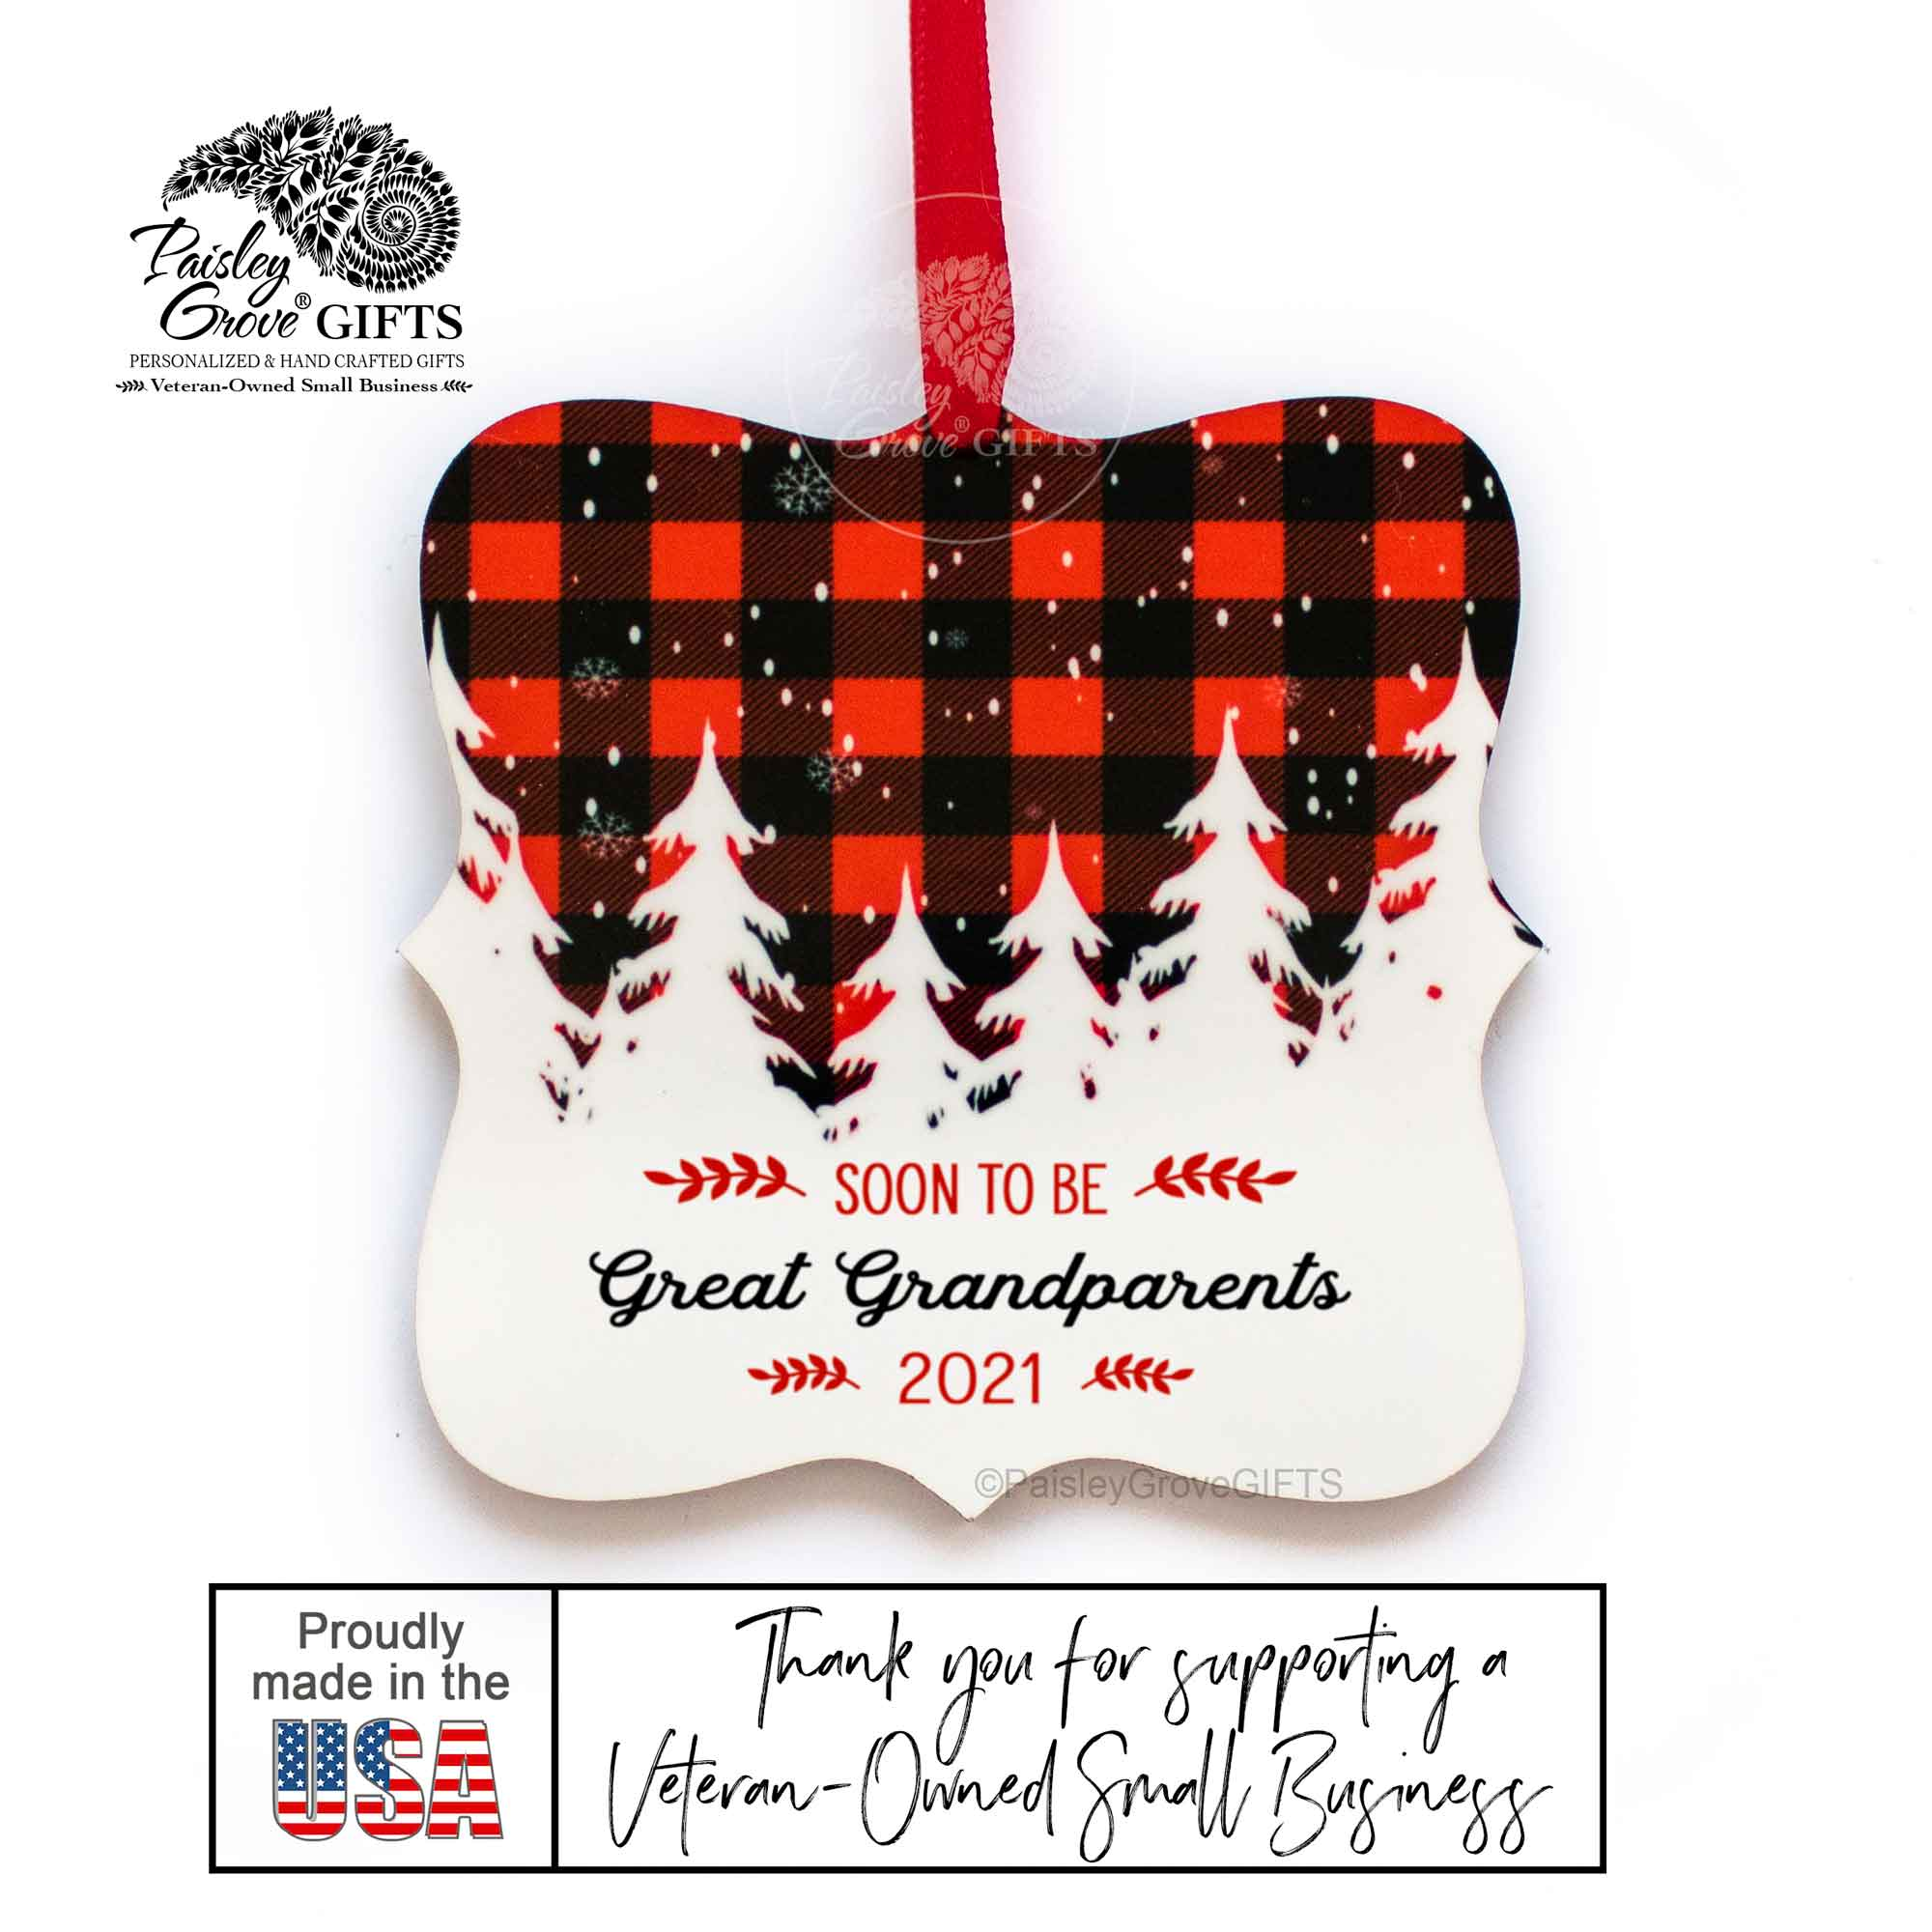 CopyrightPaisleyGroveGIFTS S502e6 Soon to be great grandparents ornament is made in usa